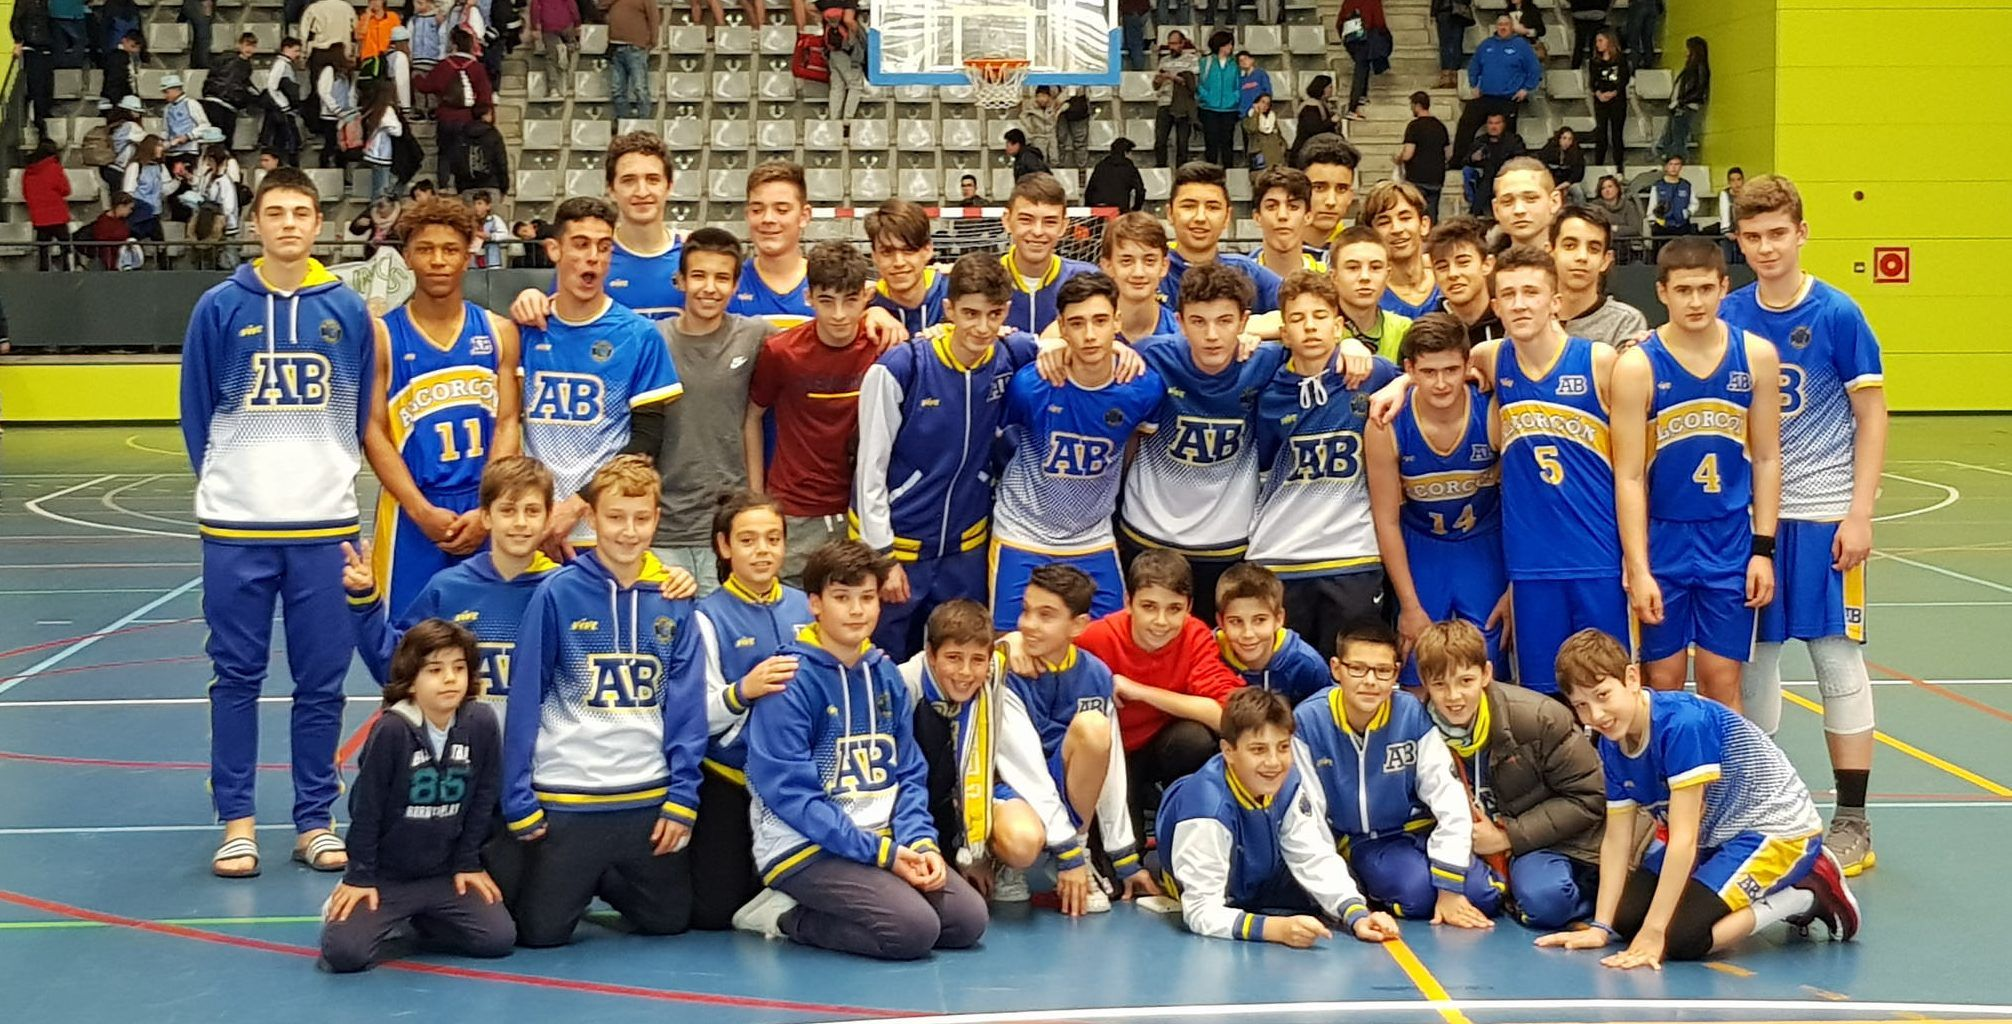 globasket 2018 alcorcon basket